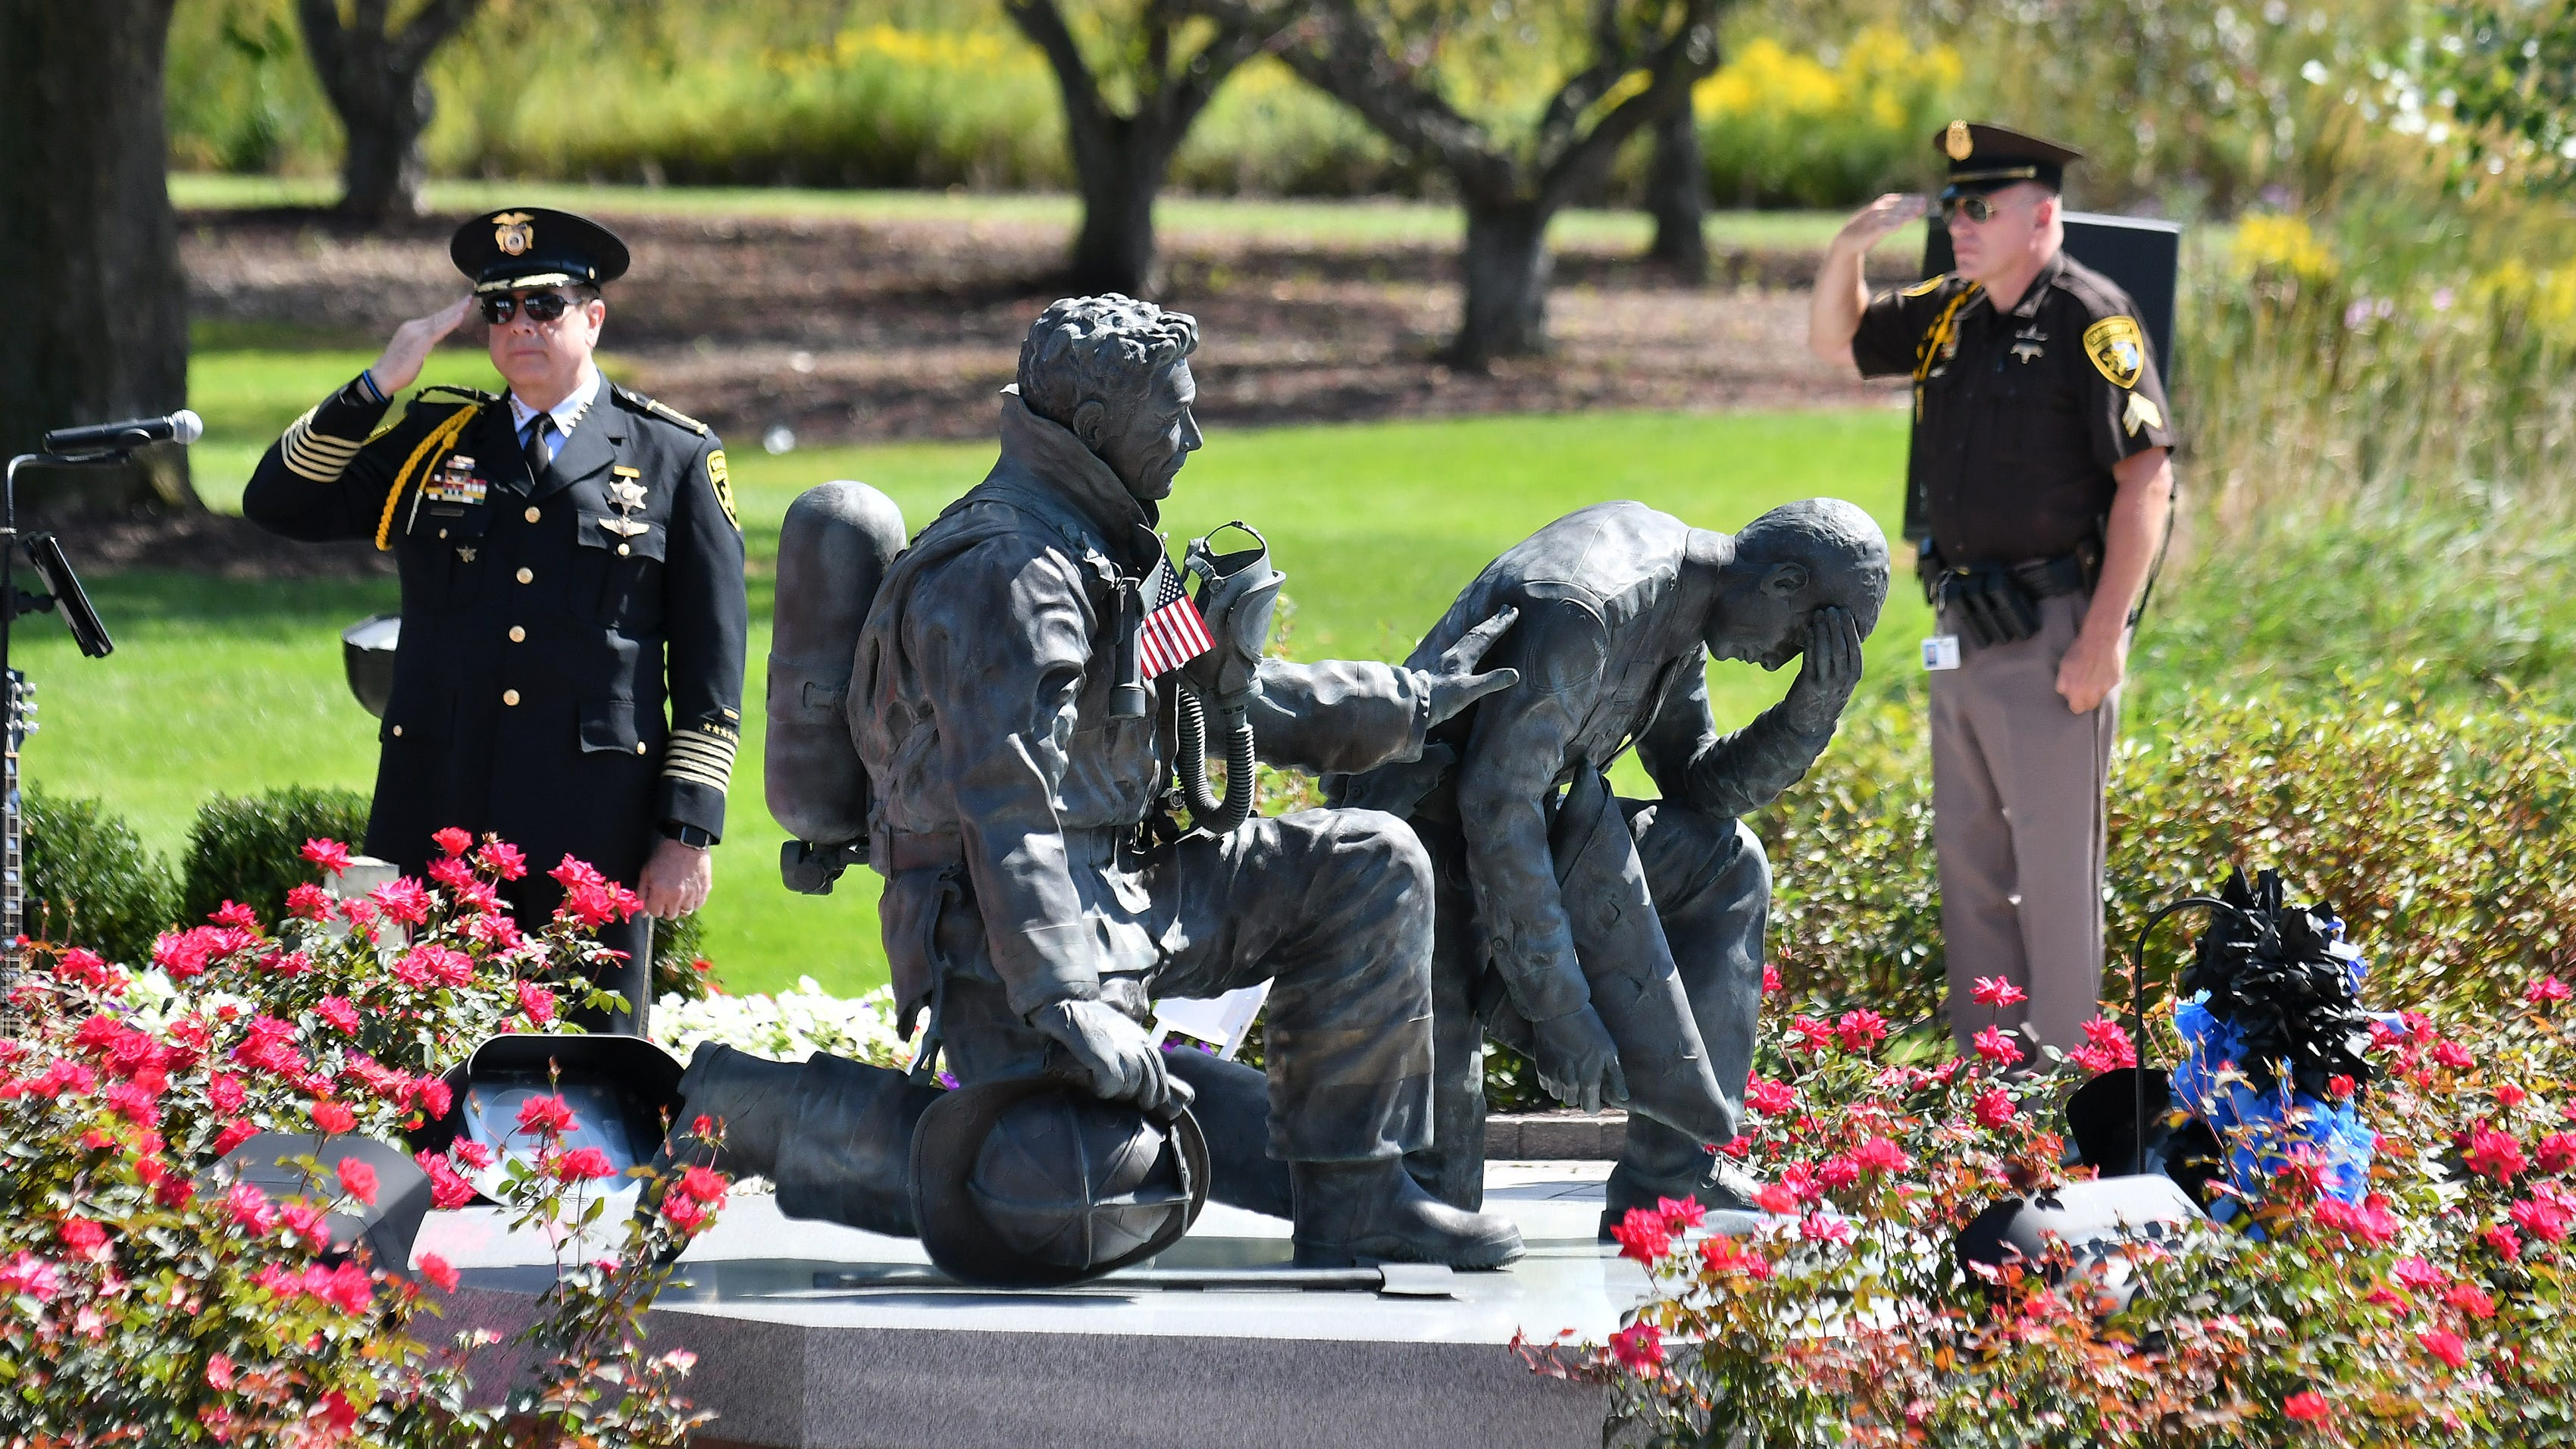 Sept. 11 heroes saluted in Oakland County: 'We should never forget'